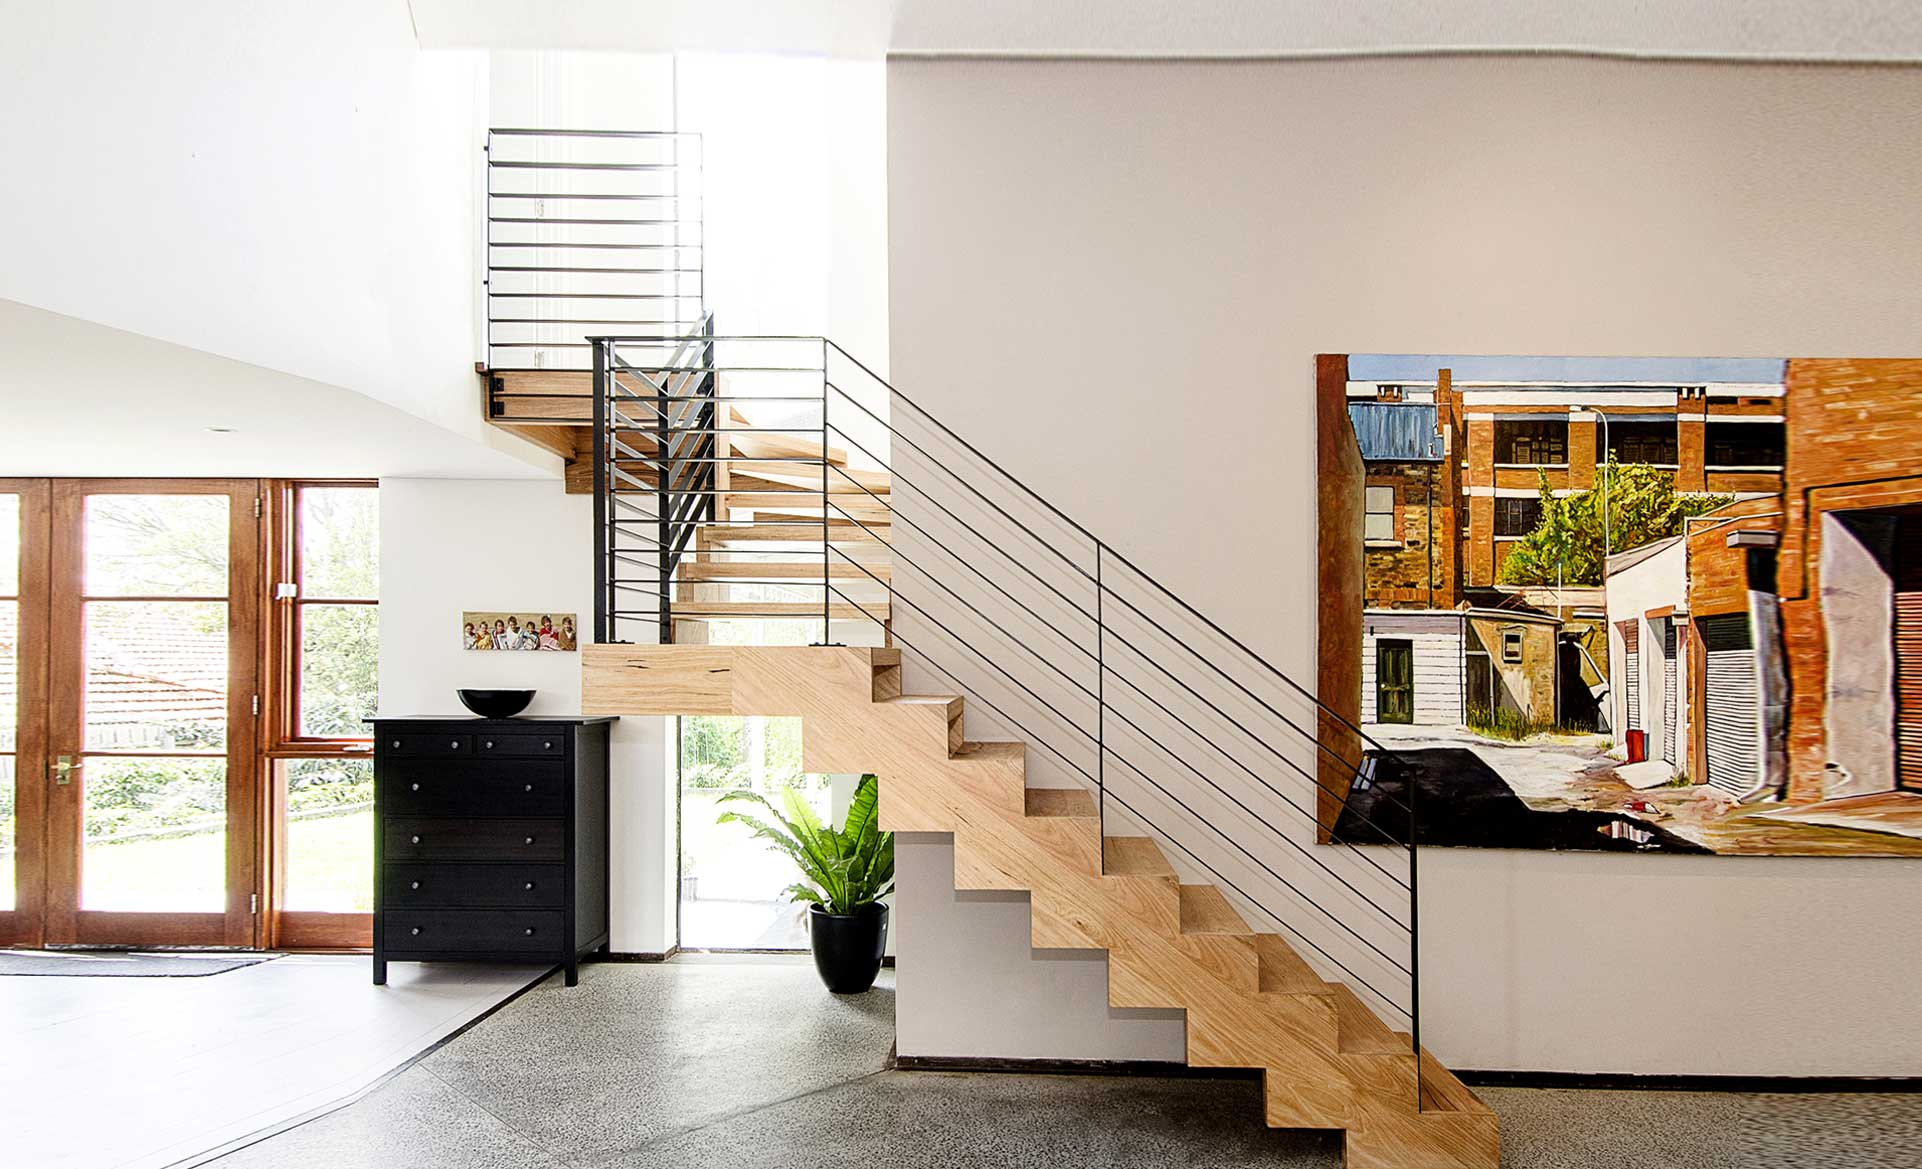 Captivating U0027Signature Stairsu0027 Is A Boutique, Melbourne Based Stair Builder, Devoted To  Designing And Manufacturing Staircases And Balustrades Of The Highest  Quality ...